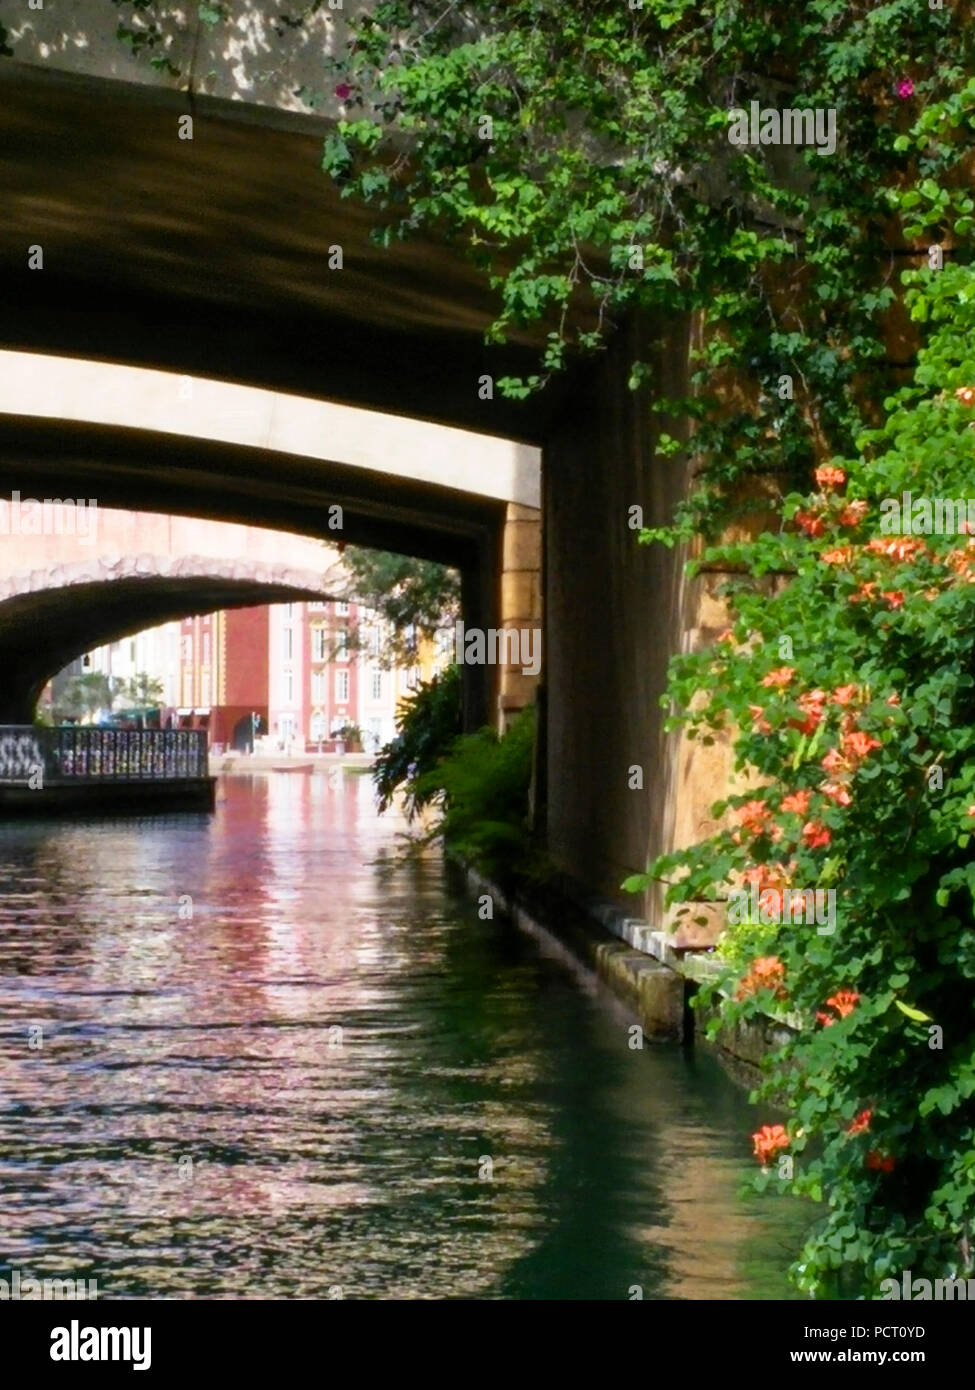 Universal Studios water taxi waterway with two overpasses, on way to theme park. Orlando, Florida, US - Stock Image